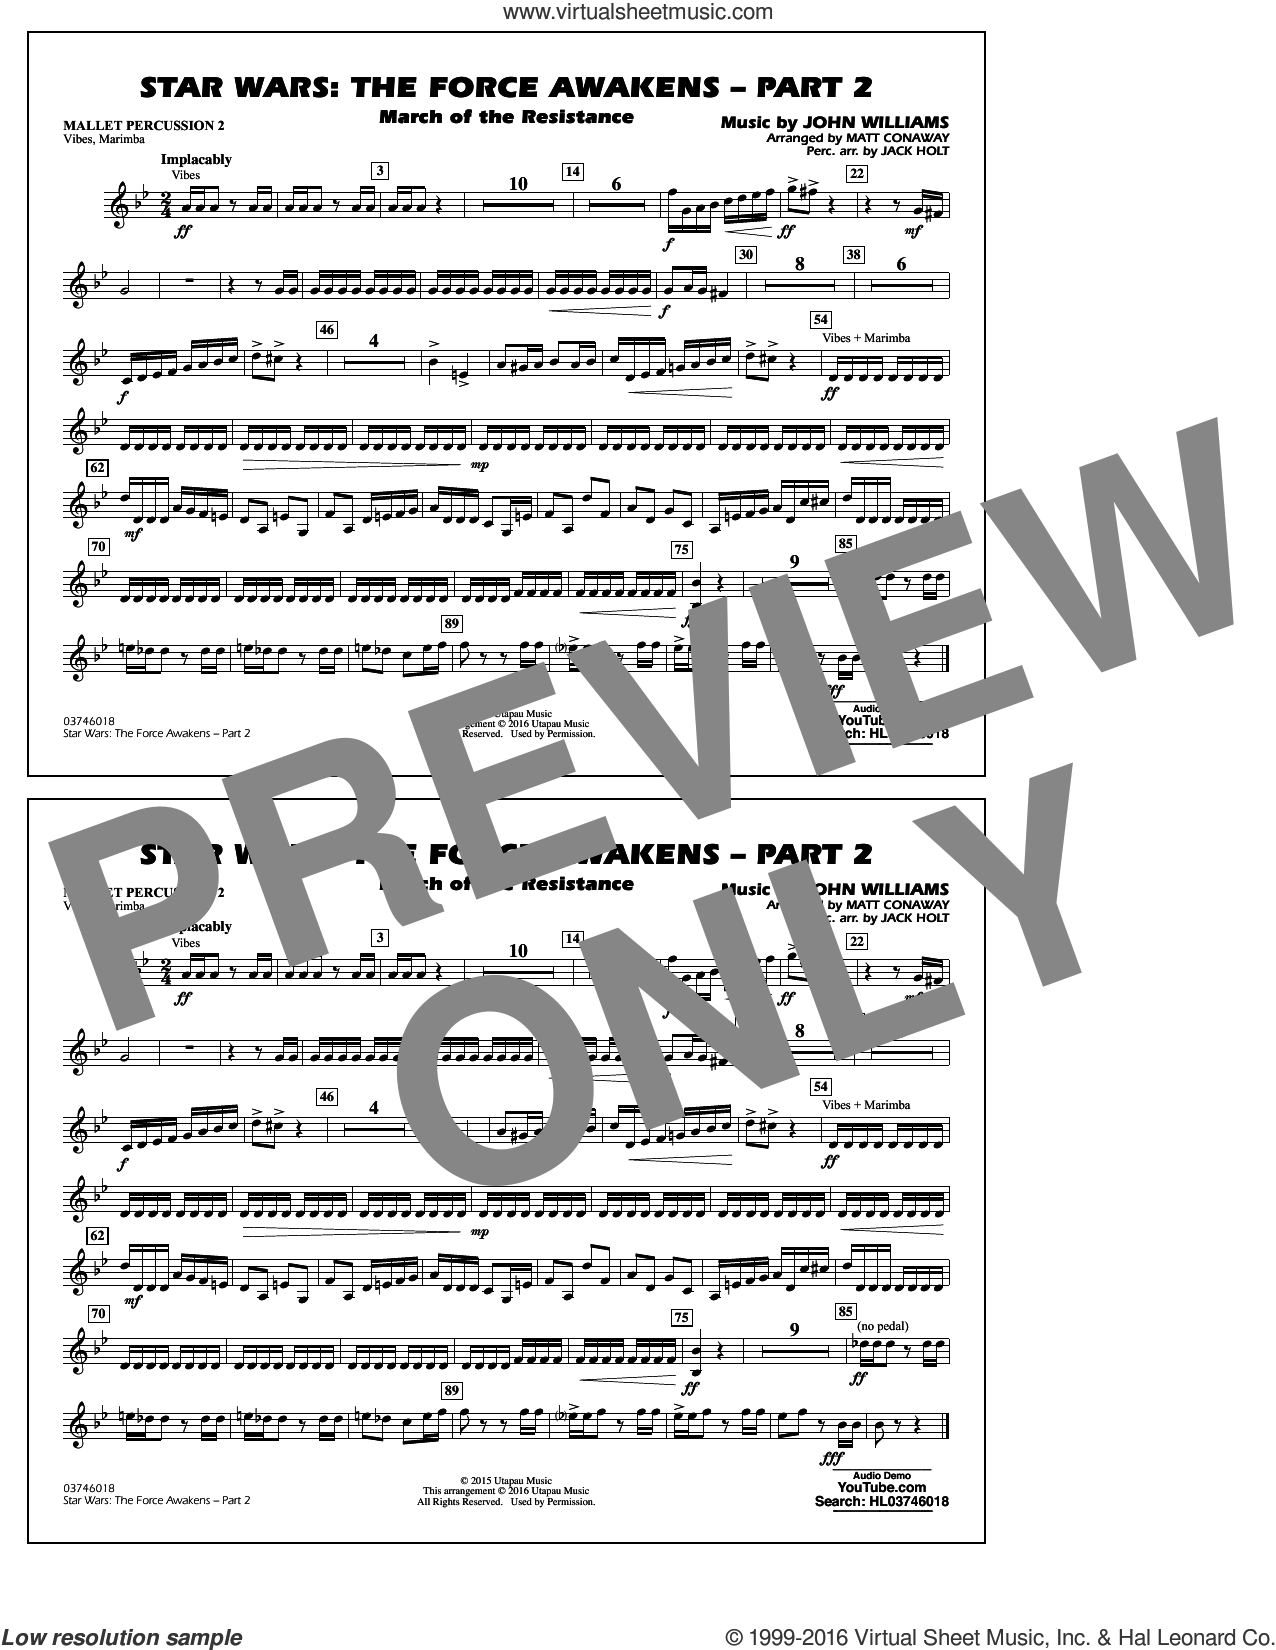 Star Wars: The Force Awakens, part 2 sheet music for marching band (mallet percussion 2) by John Williams and Matt Conaway, classical score, intermediate skill level